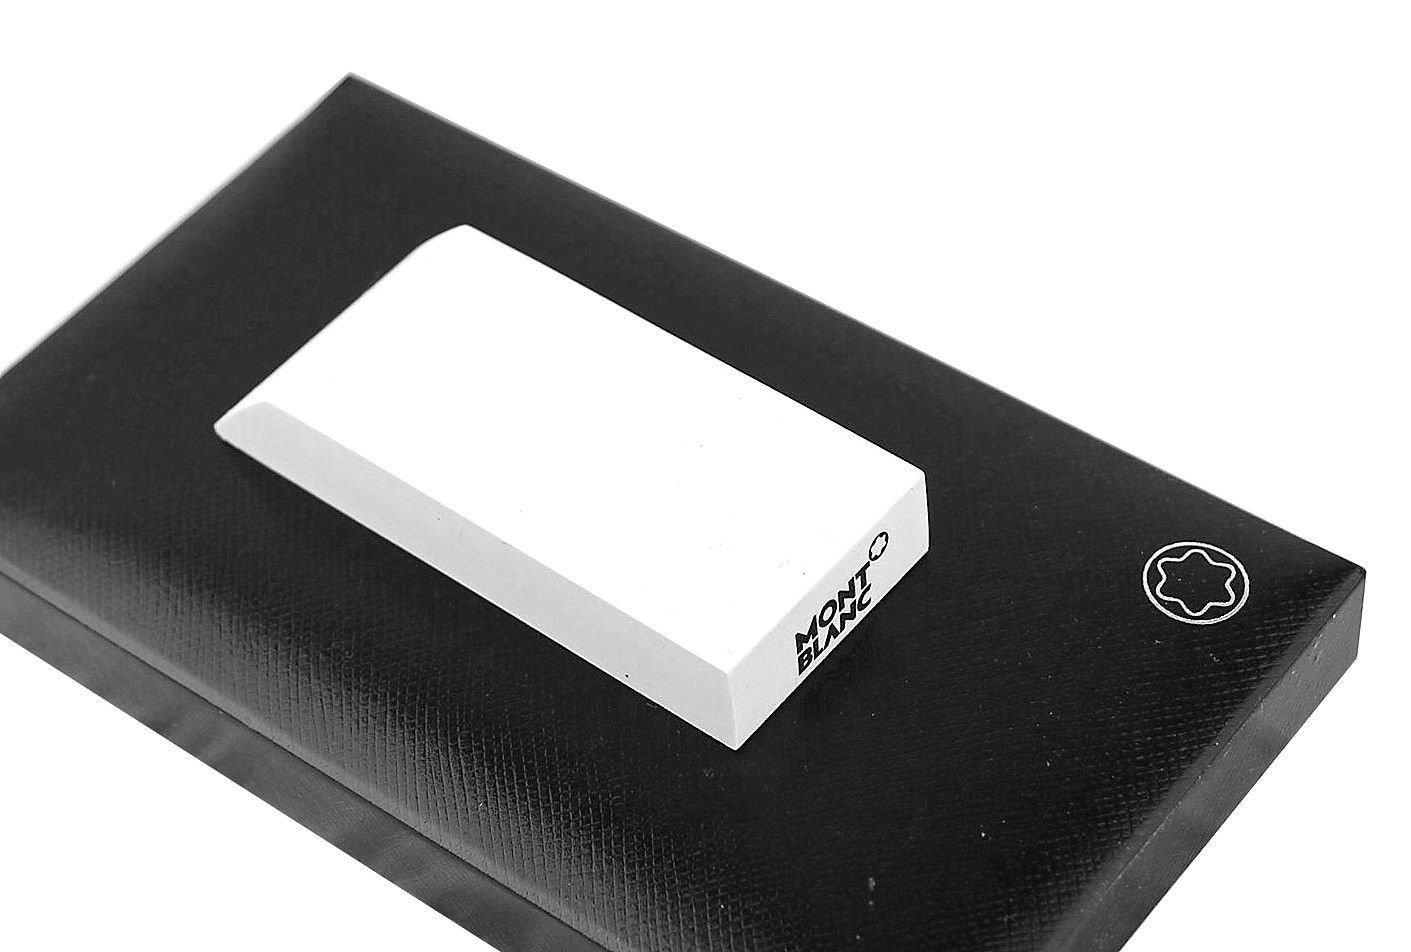 MONTBLANC MEISTERSTUCK ONE GENUINE REFILL WHITE ERASER WITH LOGO GERMANY 101312 by MONTBLANC (Image #1)